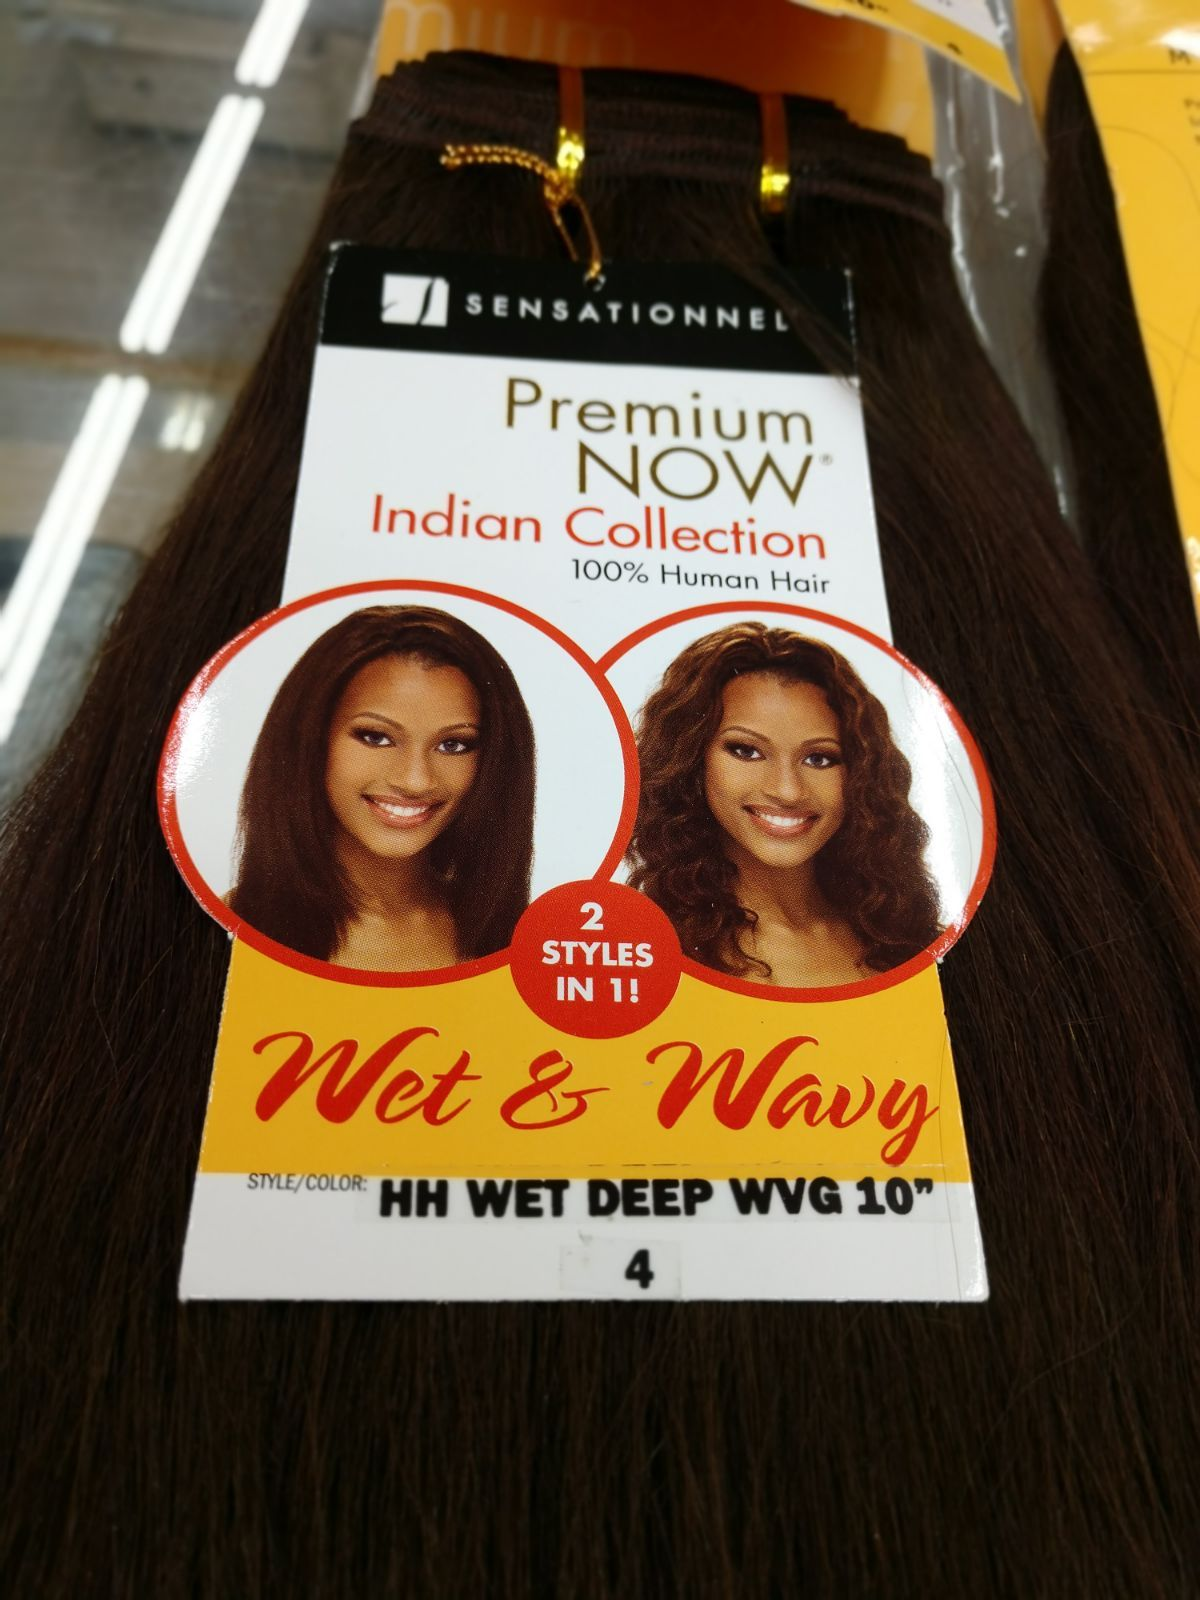 2 Packs Of Sensationnel Premium Now 100 Human Hair Weaving Hair Indian Collection Wet Wavy Length 10 Style Deep Wave Colo 100 Human Hair Human Hair Human